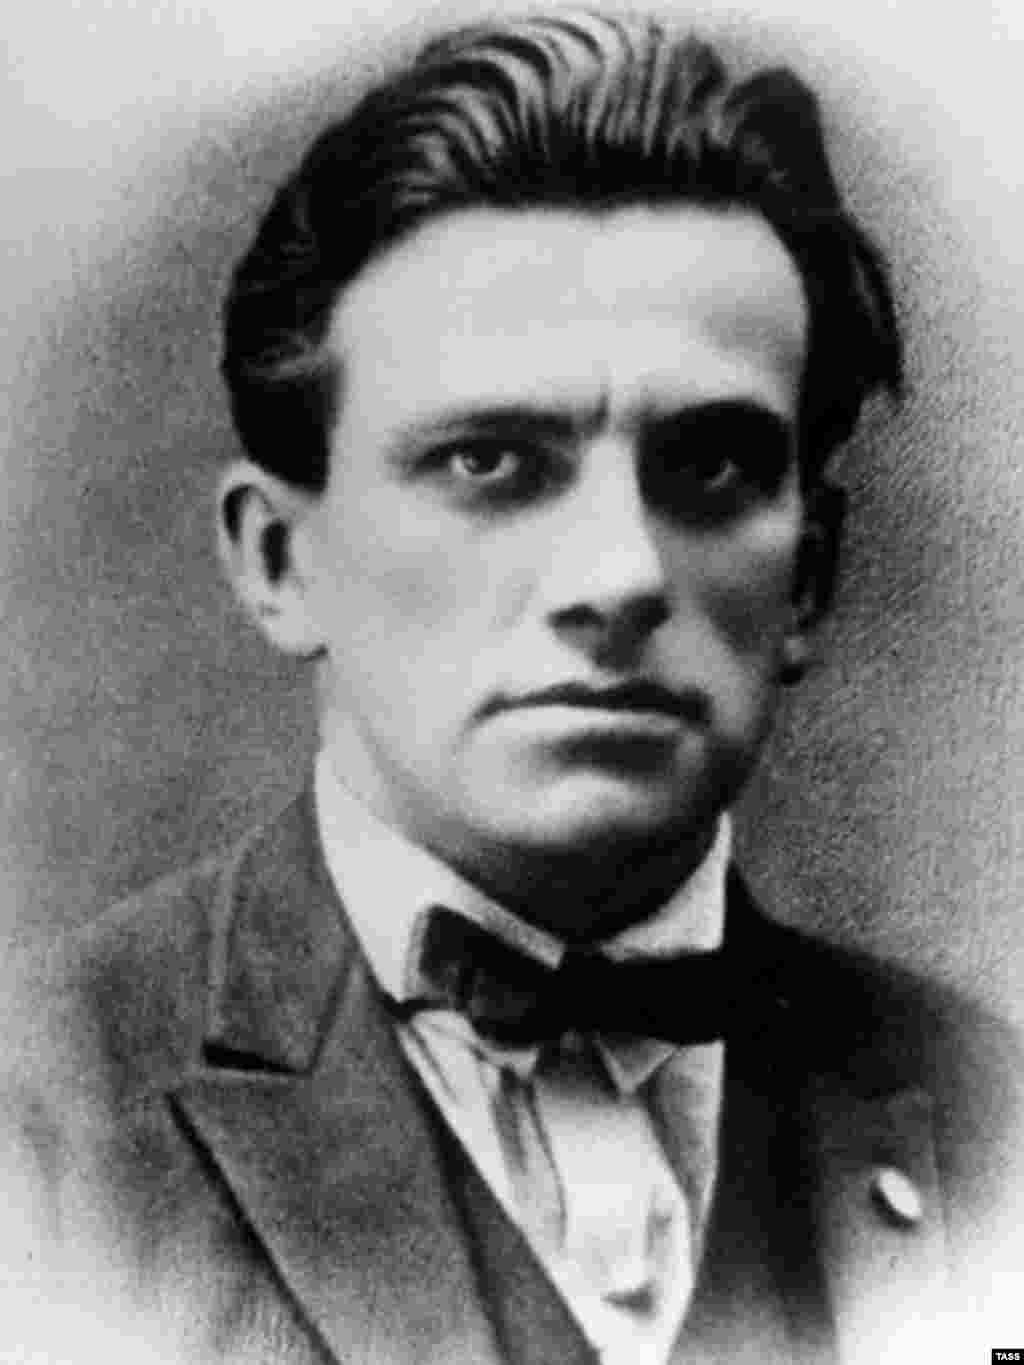 Poet Vladimir Mayakovsky, 1925 - Vladimir Mayakovsky was one of the great formulators and influences of the Soviet revolutionary aesthetic. In addition to poetry and plays, he created posters, advertising jingles, and instructional booklets. In his later years, he devoted himself increasingly to political work. He committed suicide in 1930.